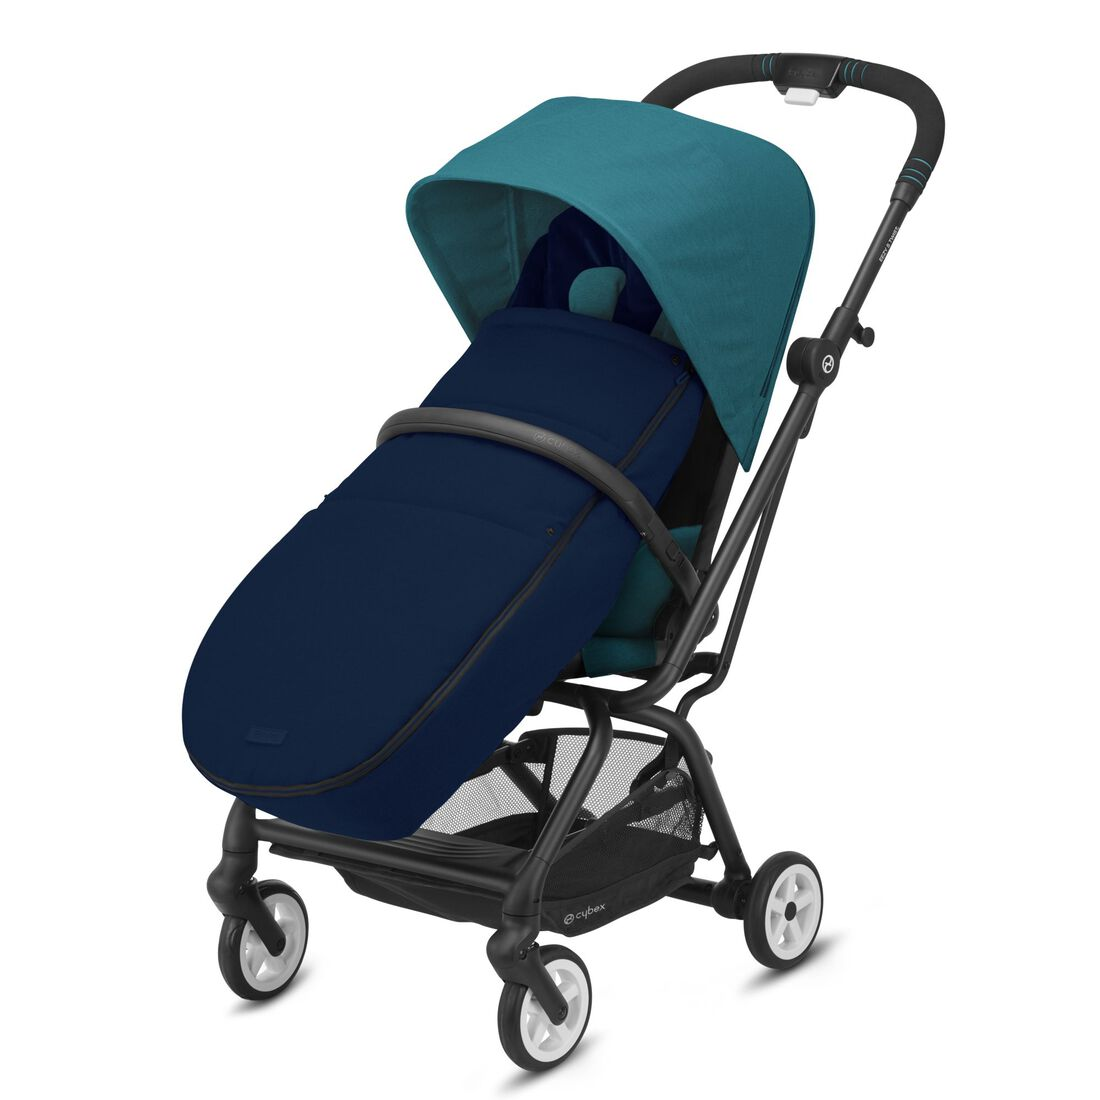 CYBEX Gold Footmuff - Navy Blue in Navy Blue large image number 3